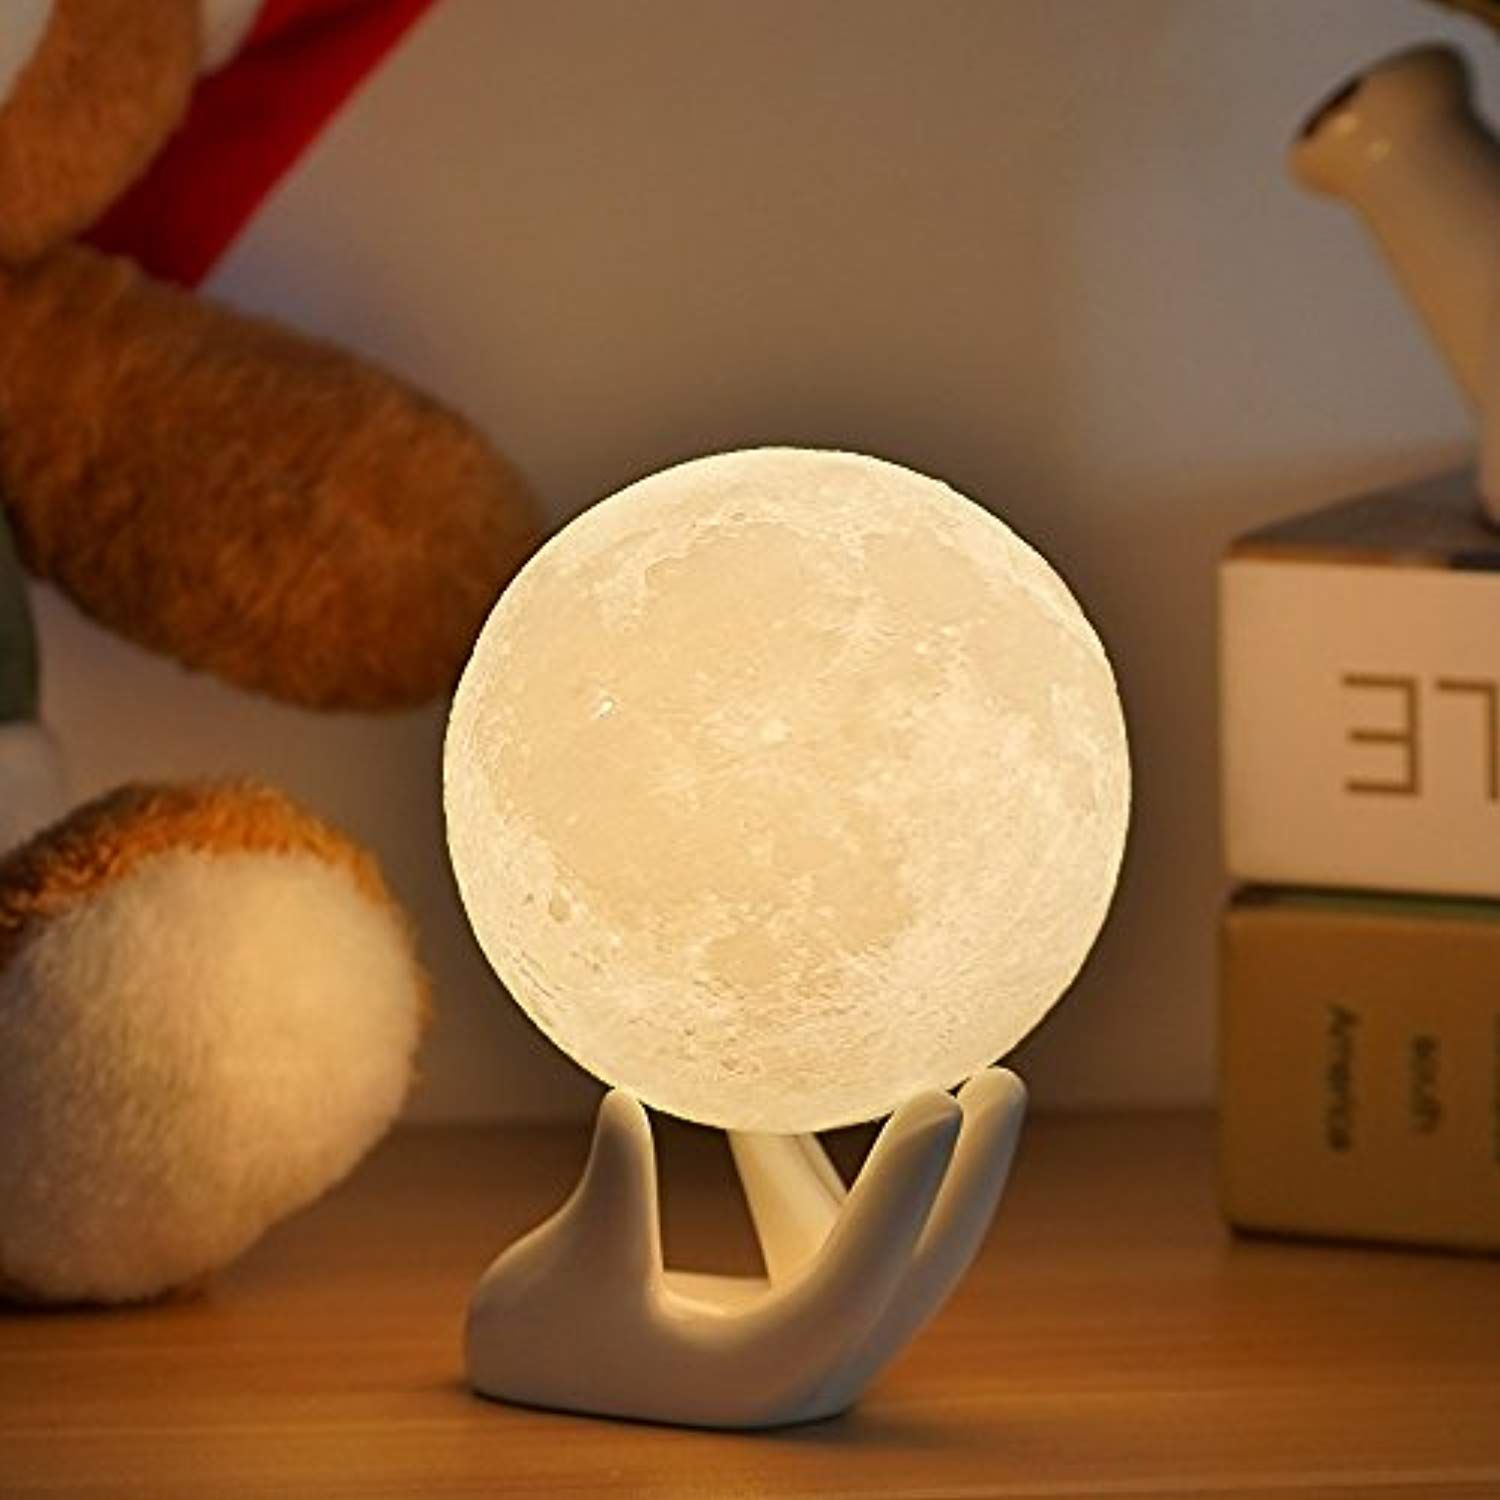 Full Moon Lamp Night Light 3 5in With Ceramic Hand Stand 3d Printed With Safe Pla Eye Caring Led Dimmab Night Light Halloween Decorations Best Baby Car Seats